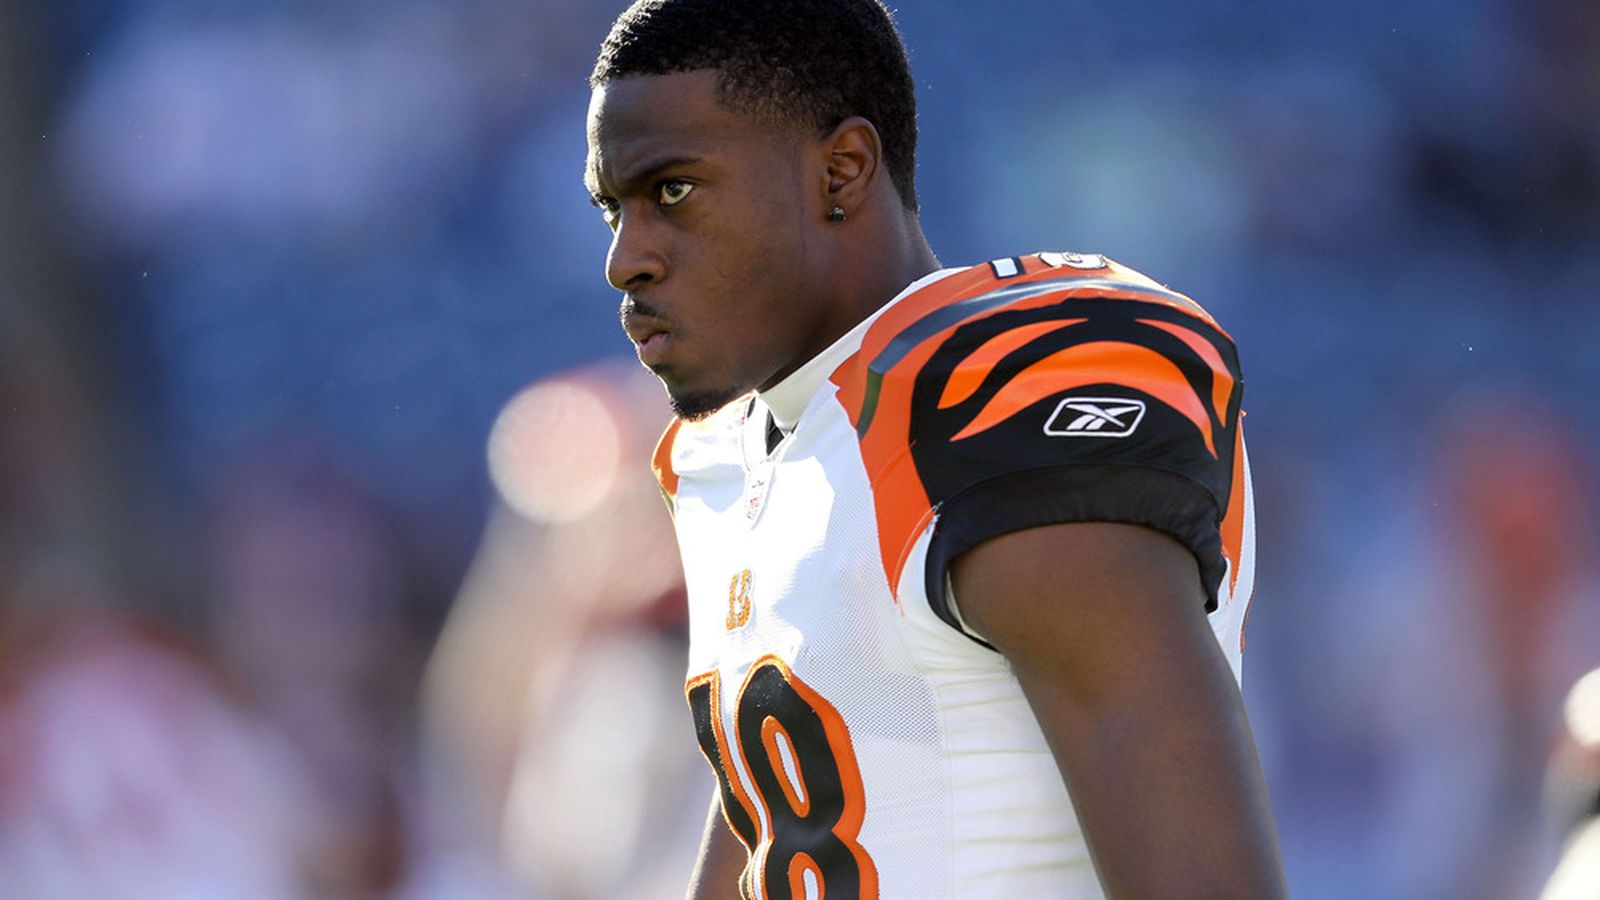 Madden 13 Aj Green Out Of The Running For Cover Cincy